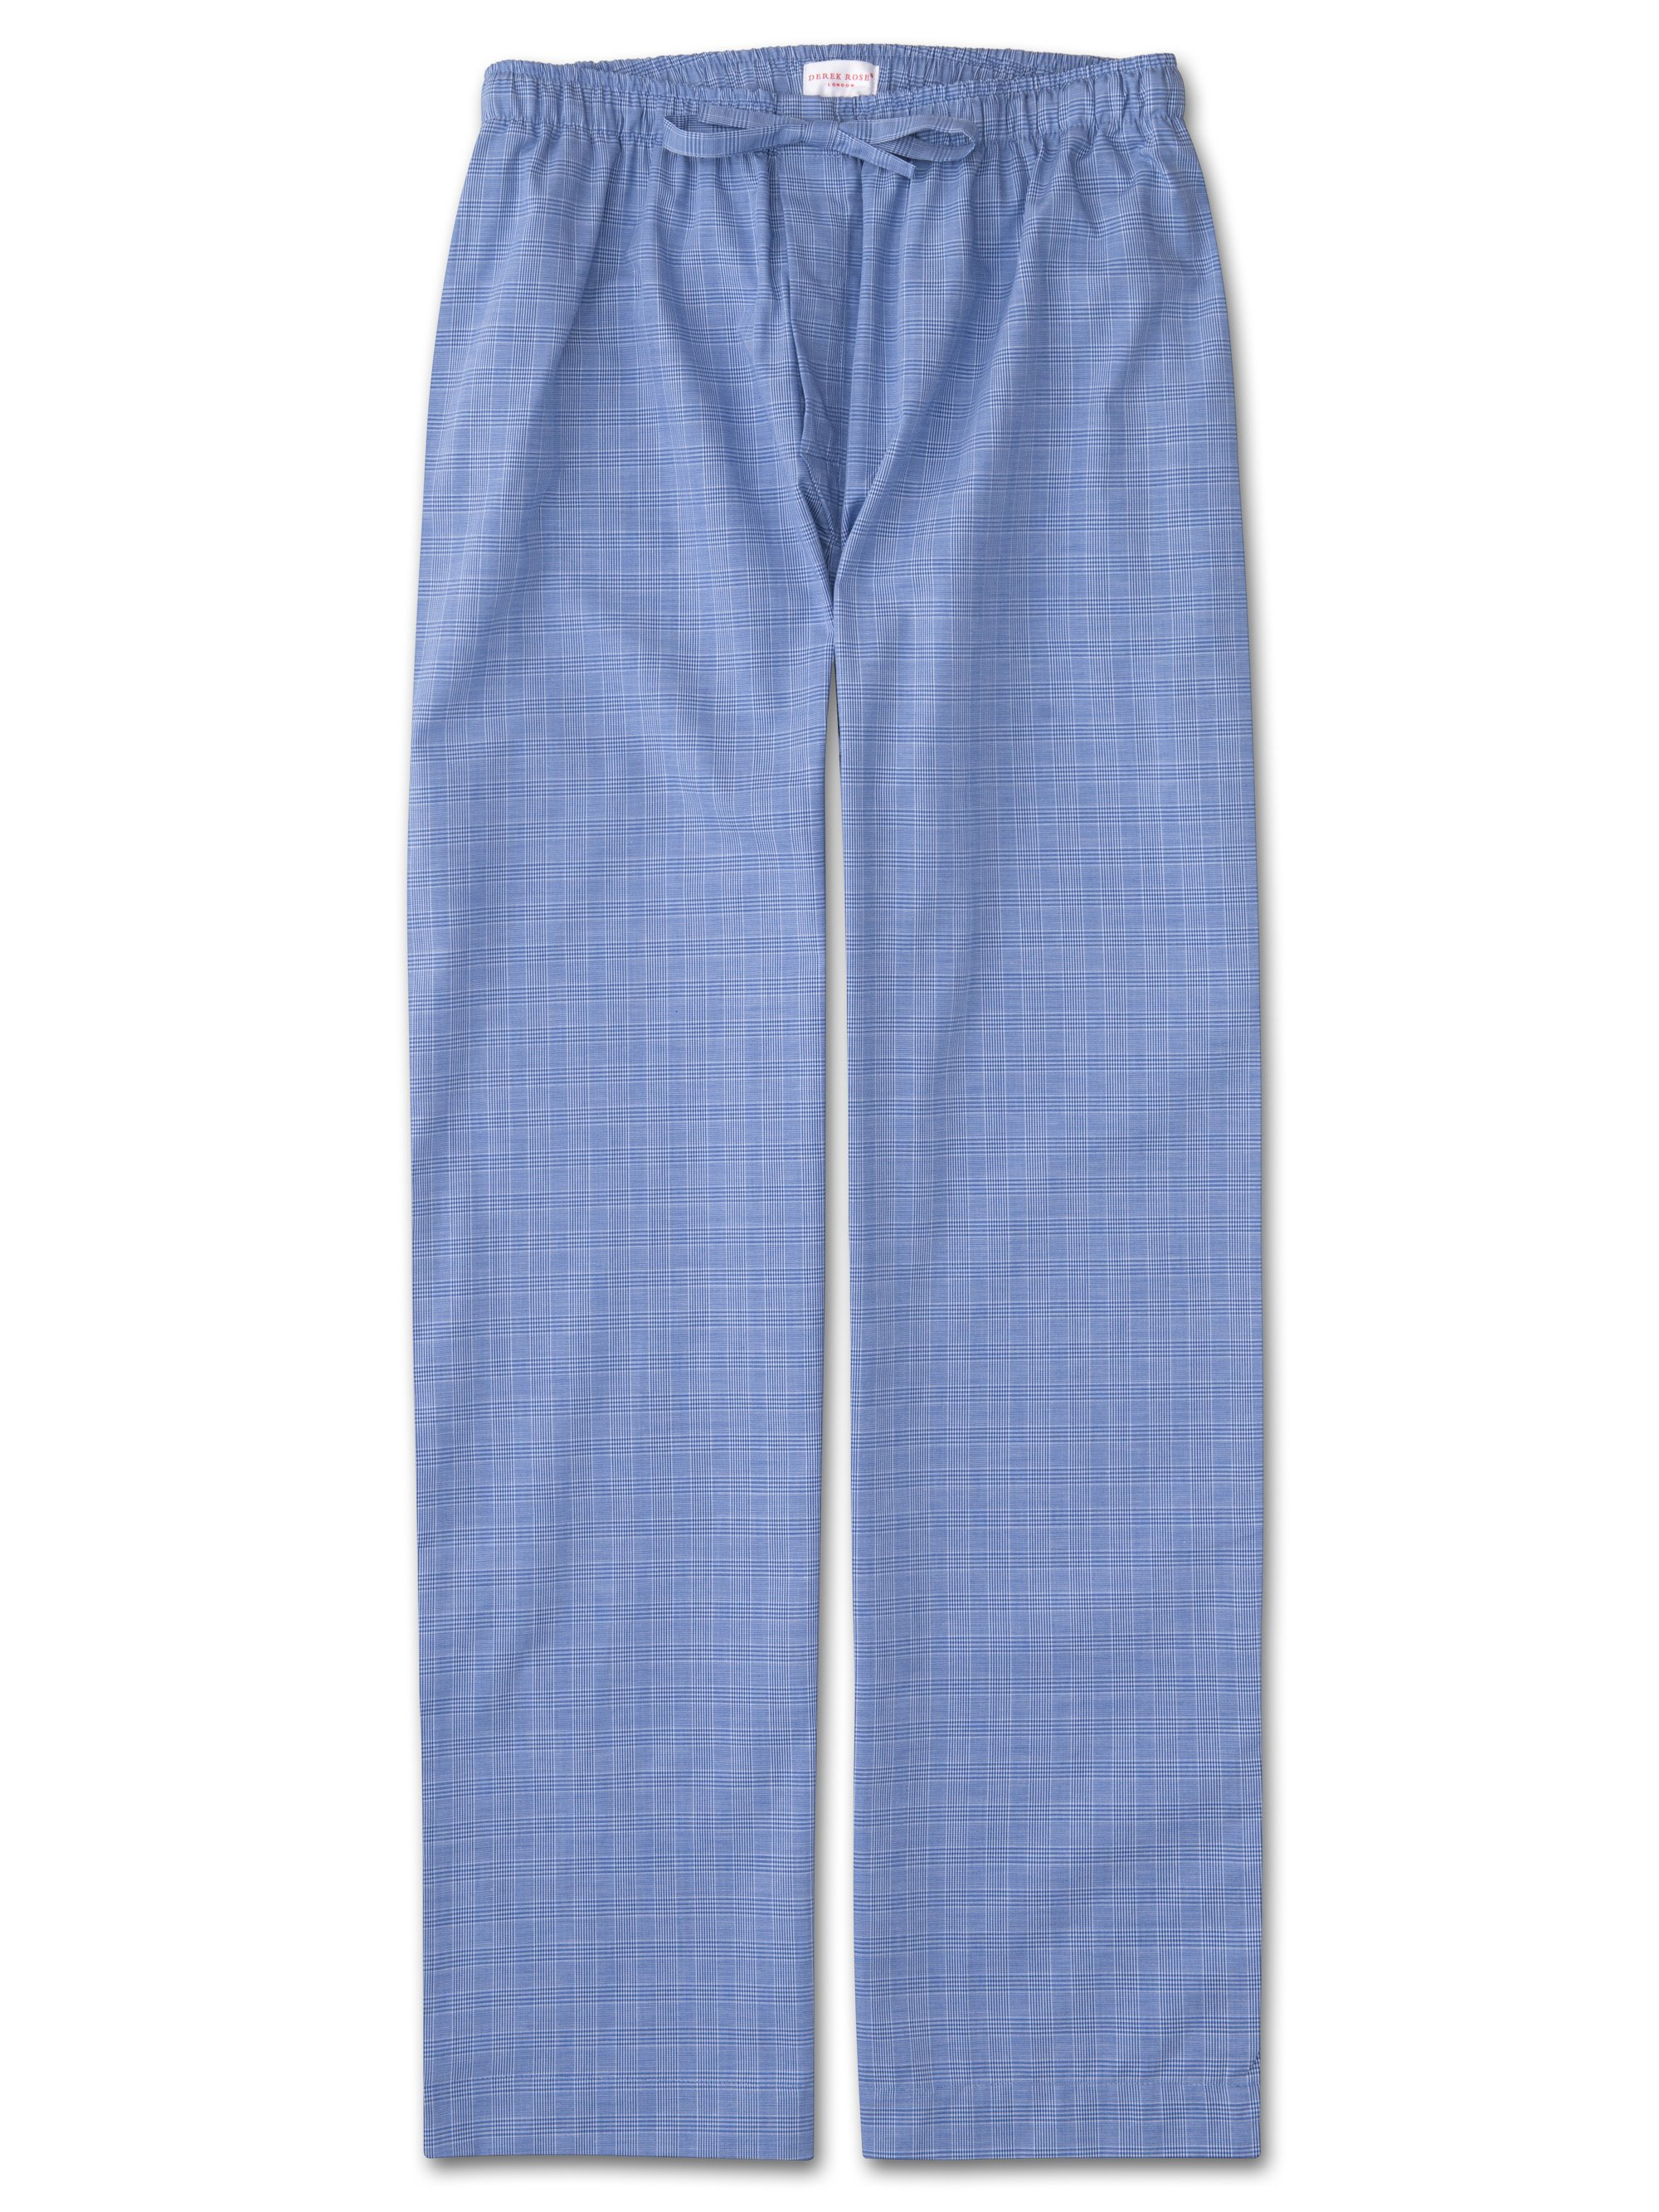 Men's Lounge Trousers Felsted 3 Cotton Check Blue